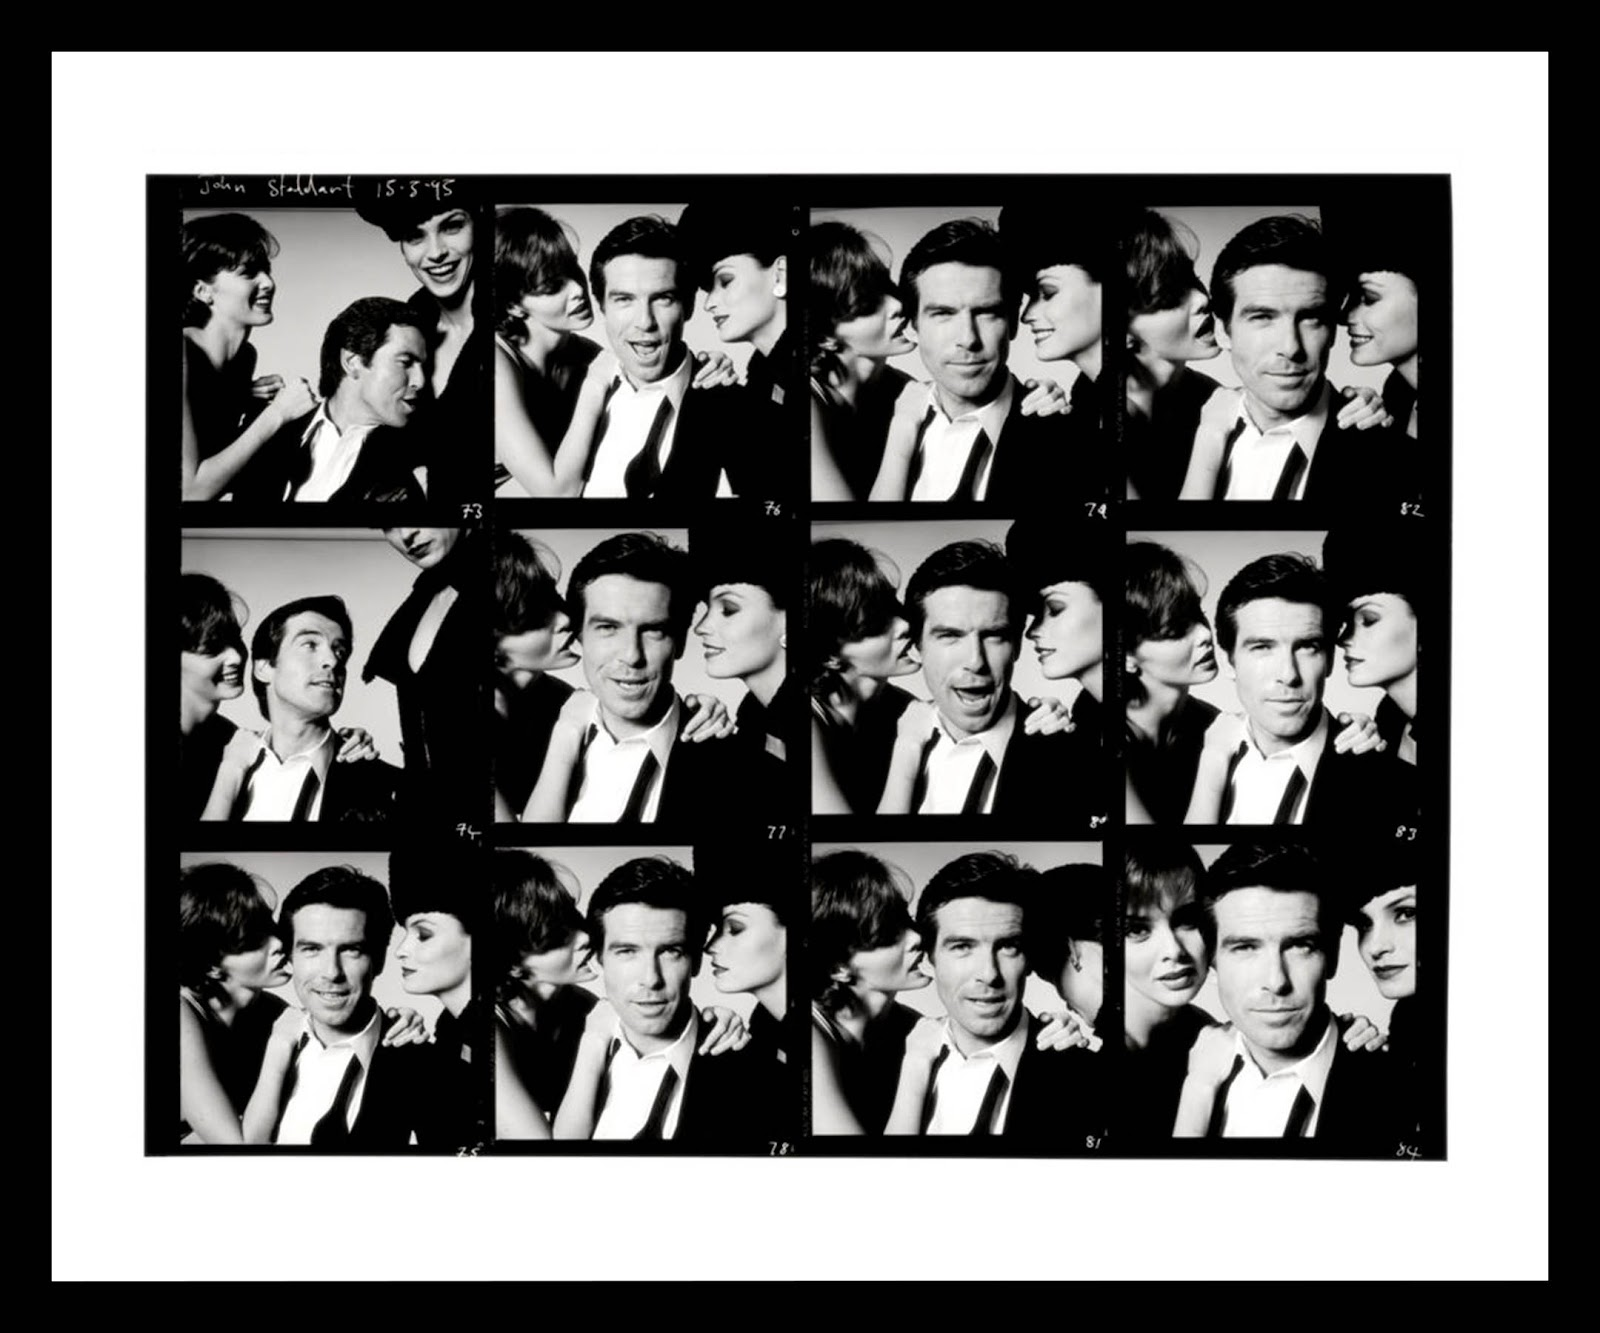 js0013_-_pierce_brosnan_contact_sheet.jpeg